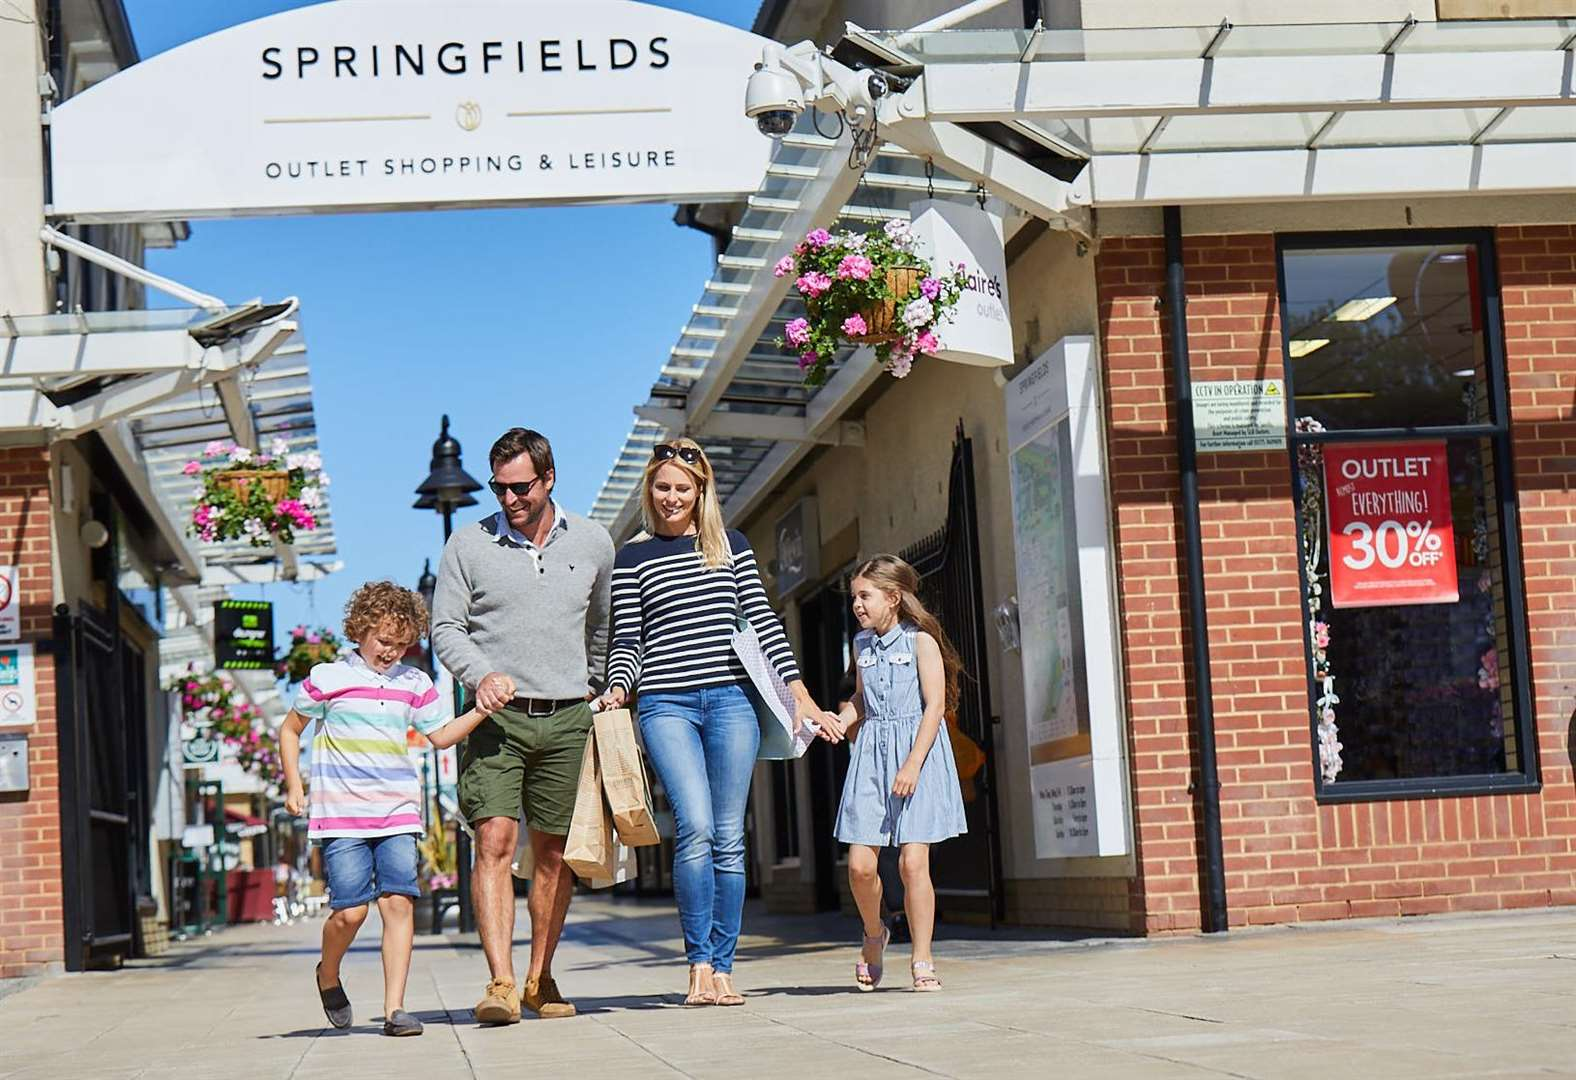 New-look Gap store to be opened at Springfields in Spalding